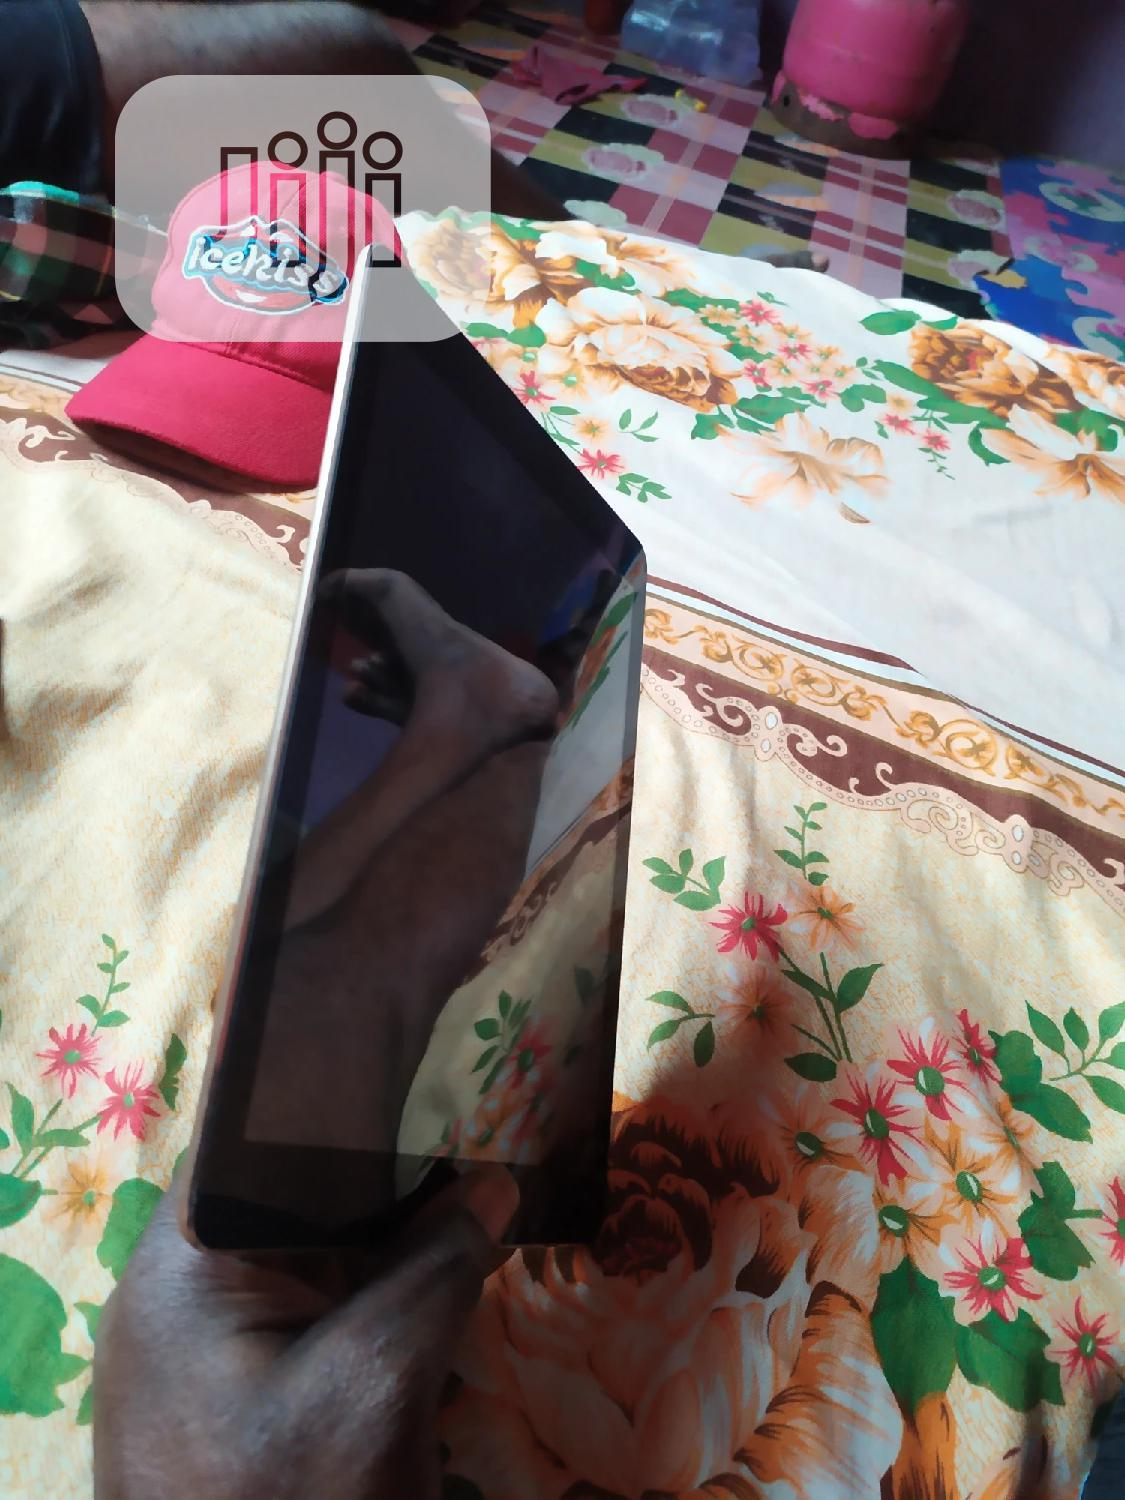 Archive: Apple iPad Air 2 64 GB Black